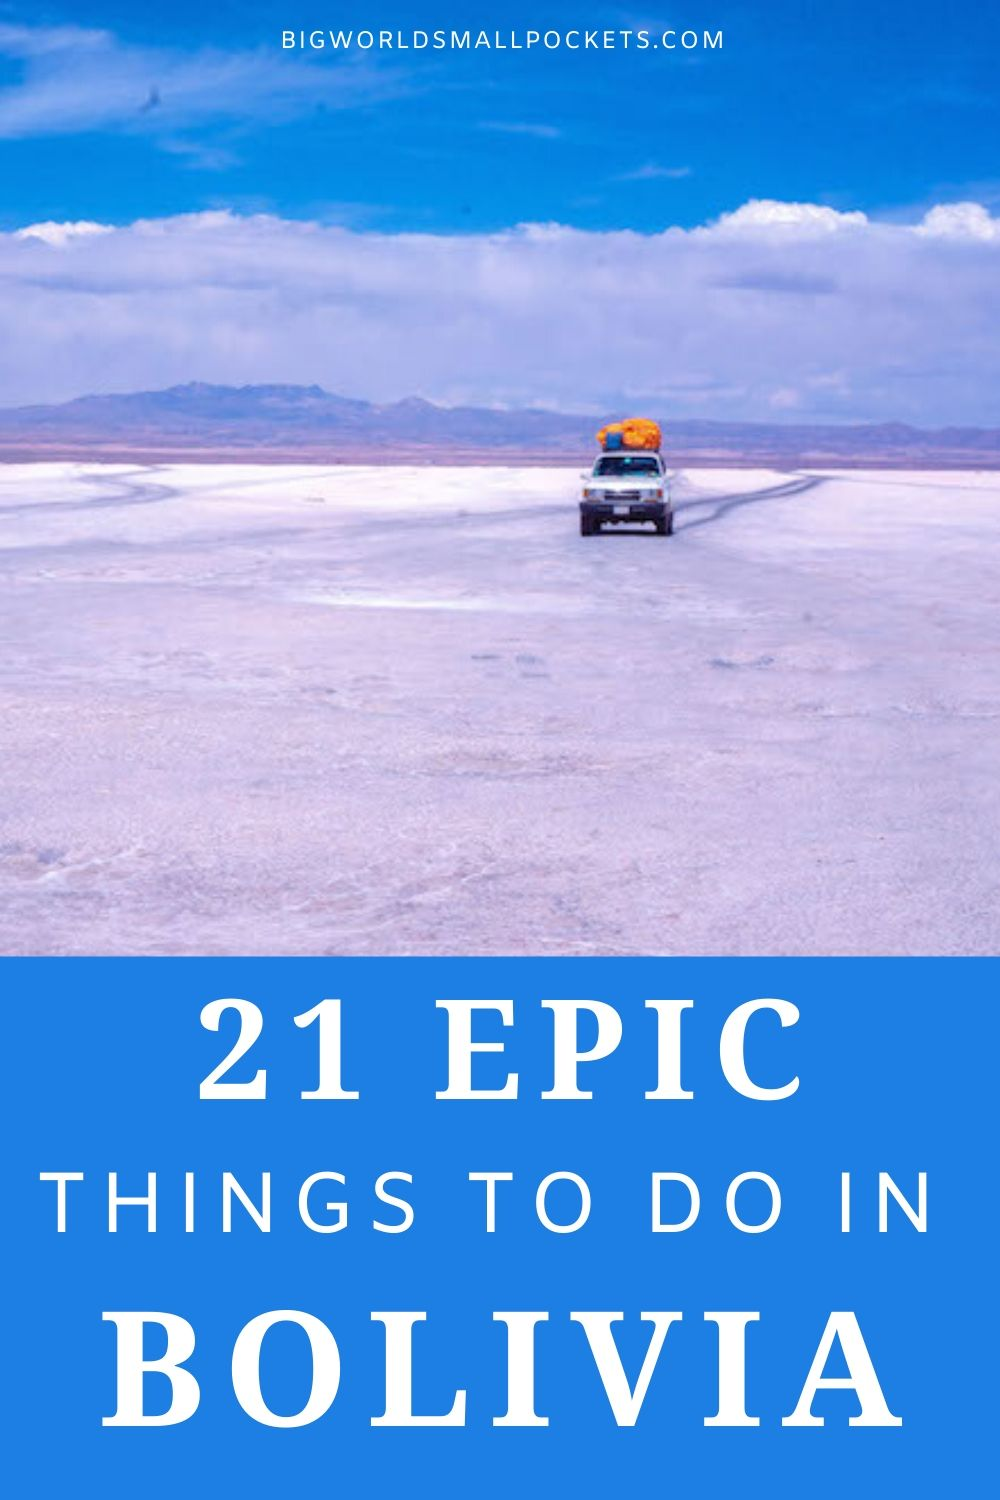 The 21 Best Things To Do When You Travel to Bolivia